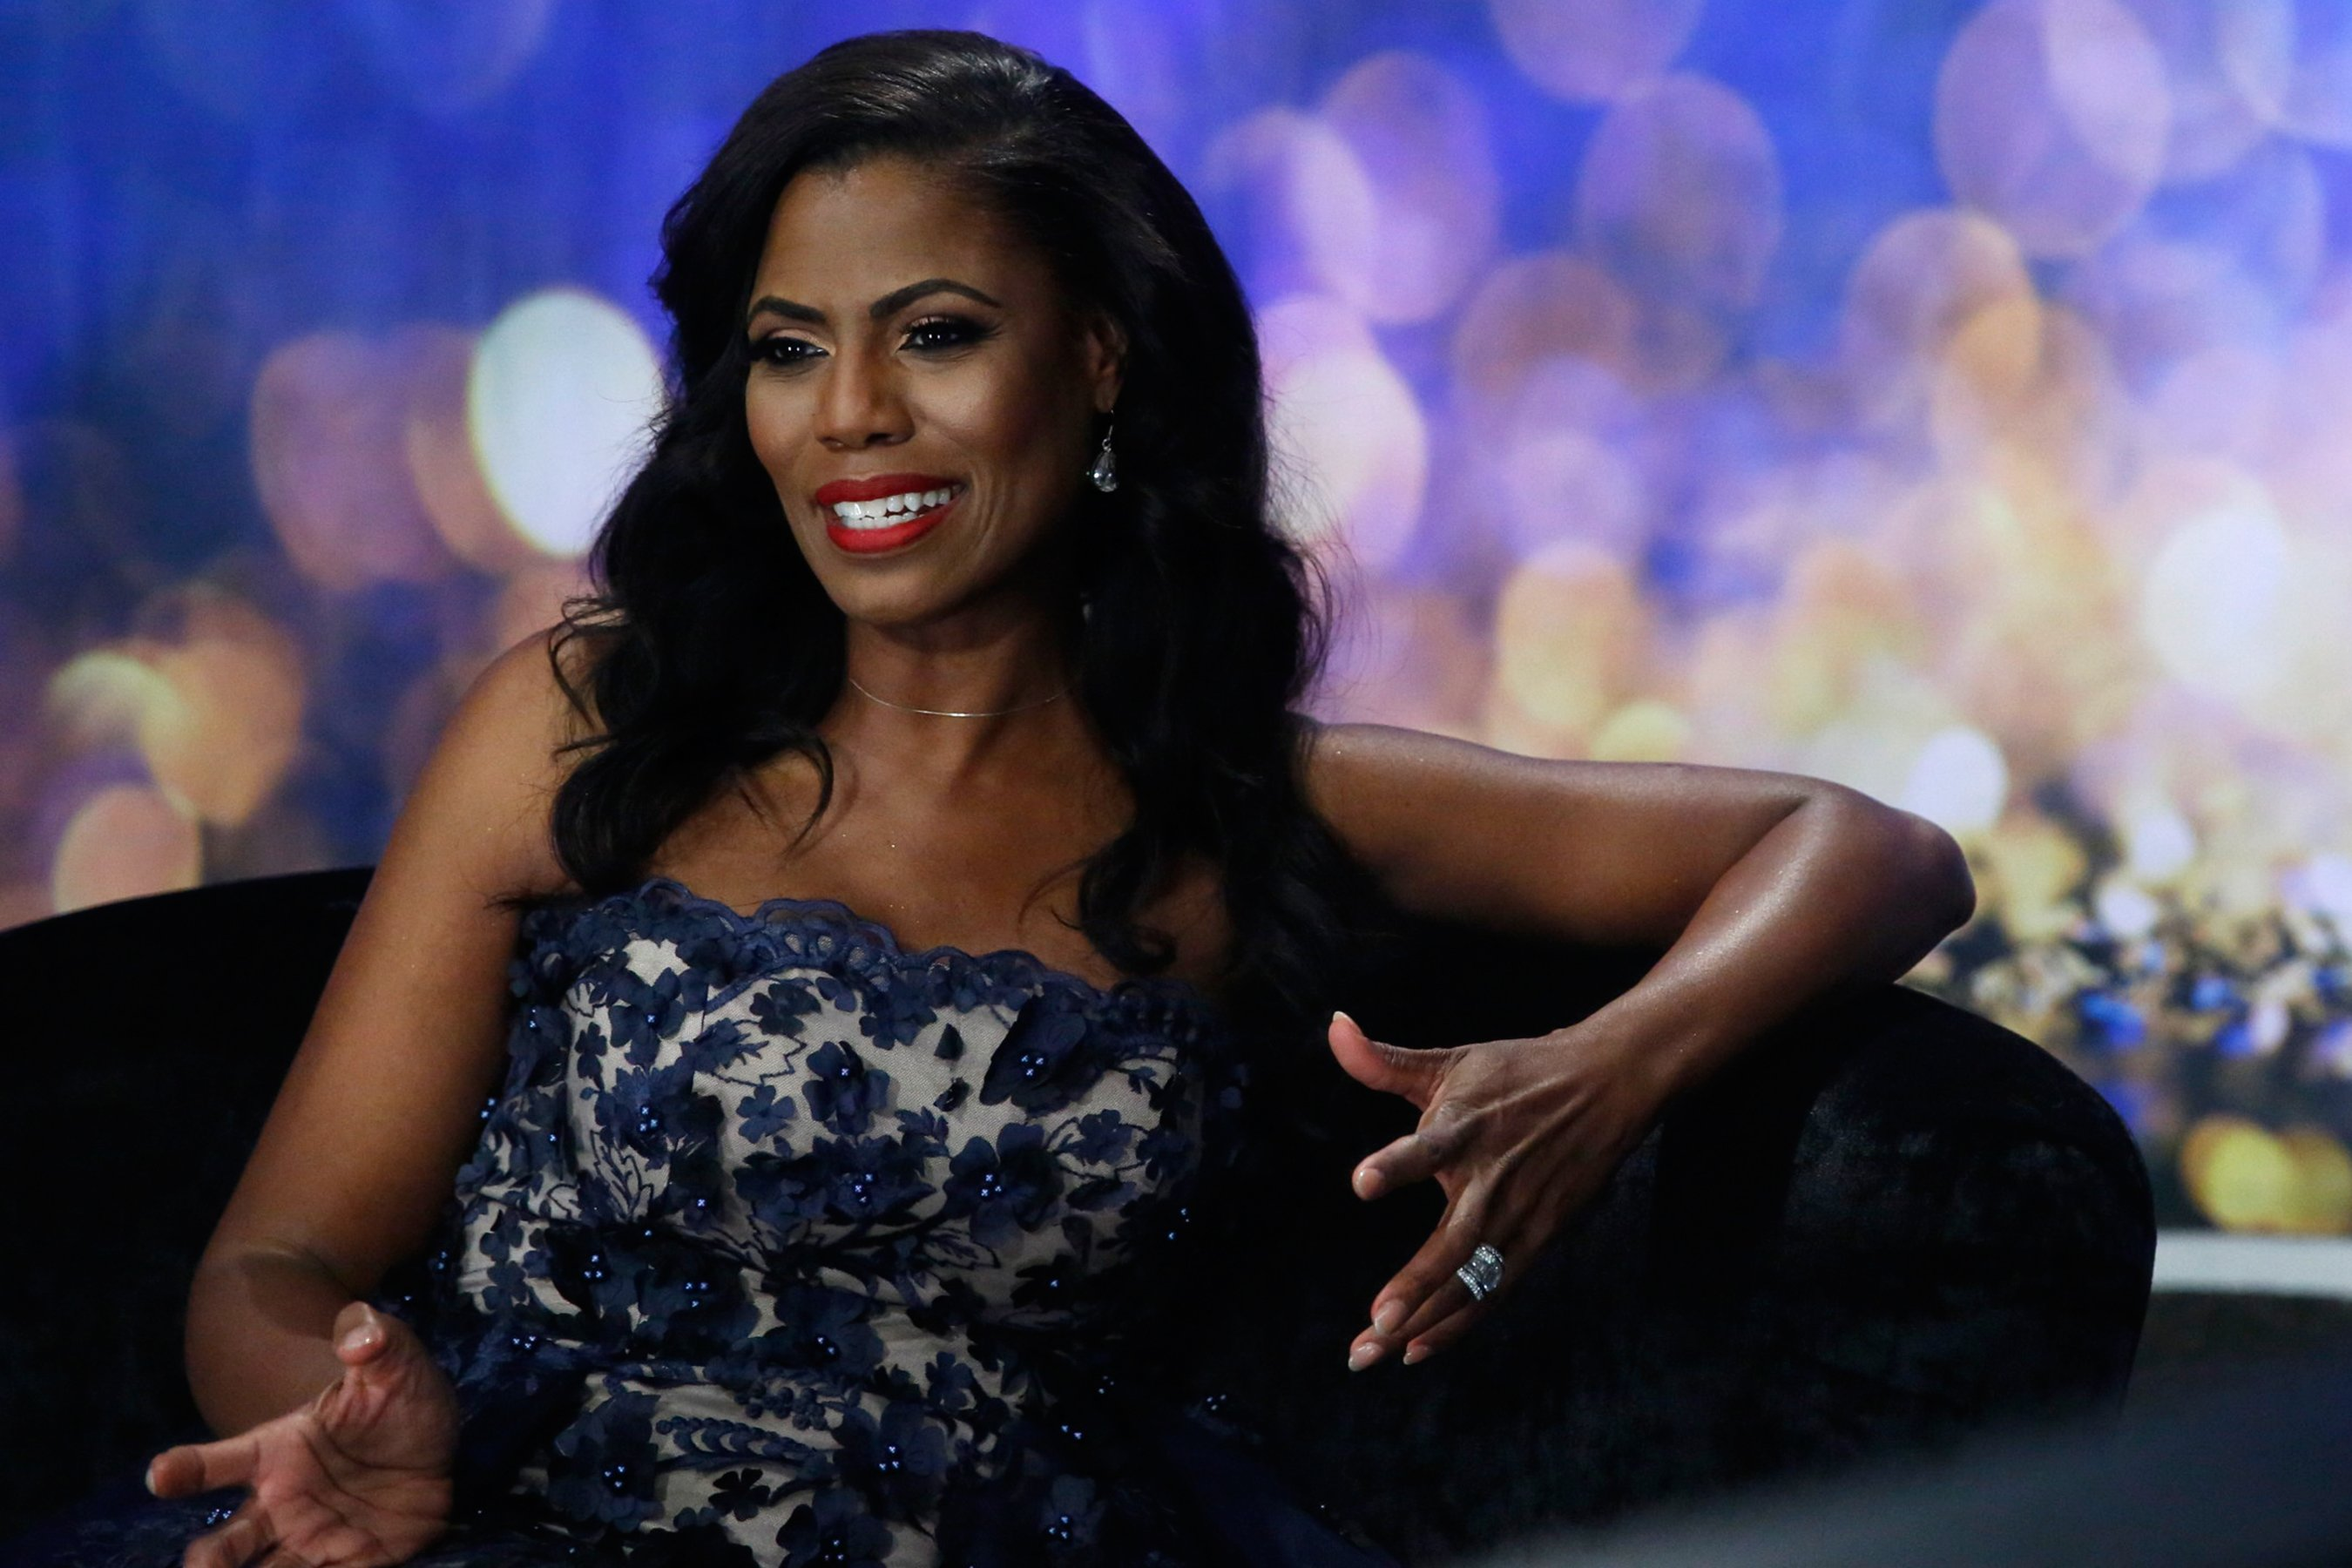 Celebrity Big Brother: Bowling triggered Omarosa's asthma attack